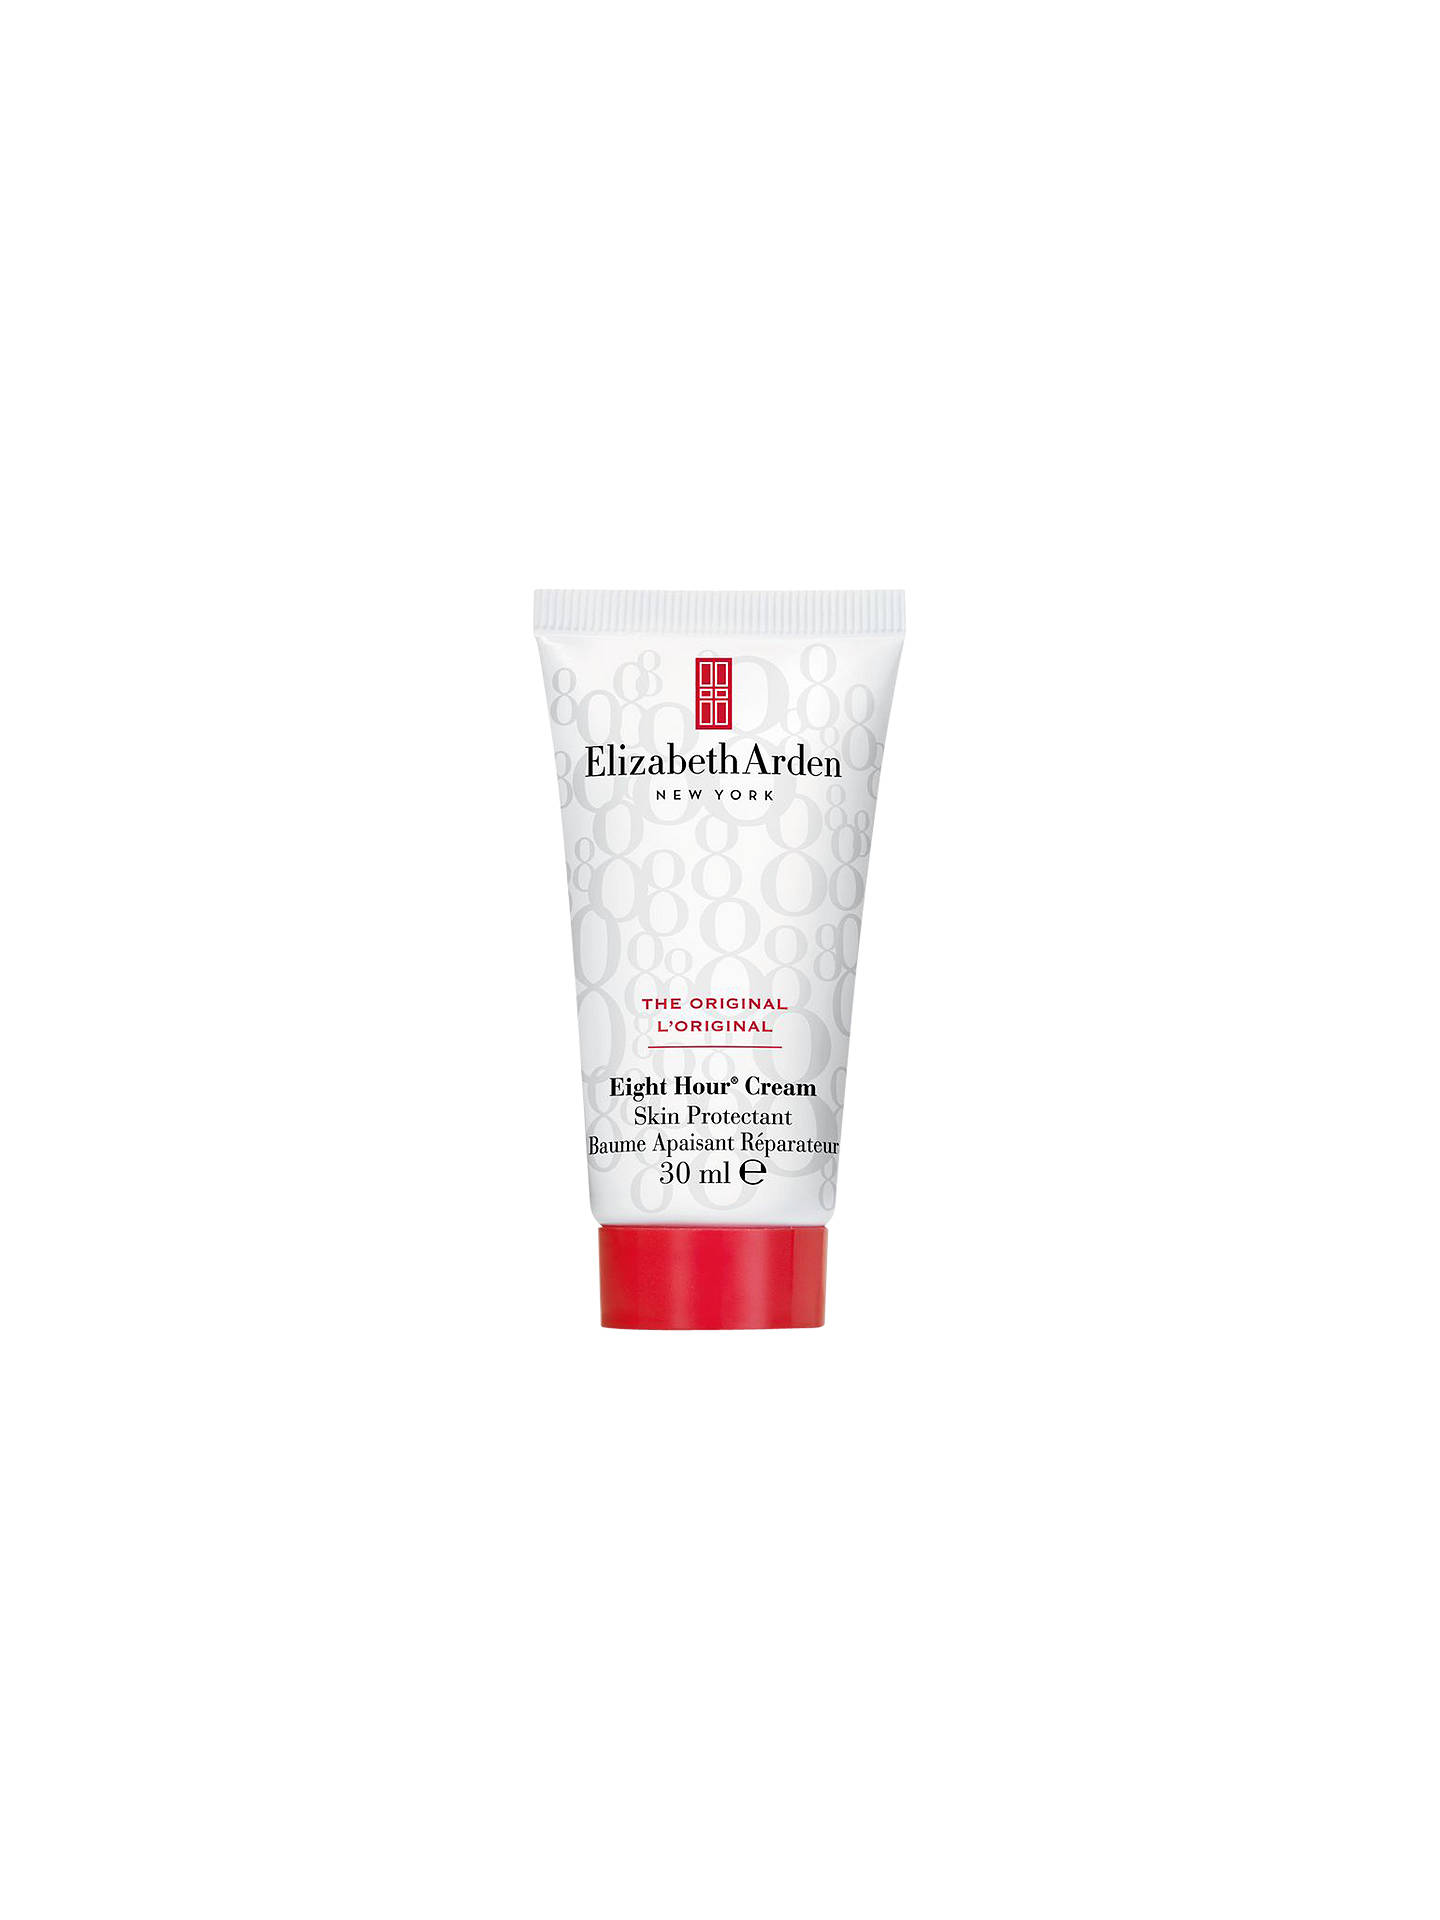 Buy Elizabeth Arden Eight Hour® Cream Skin Protectant, 30ml Online at johnlewis.com